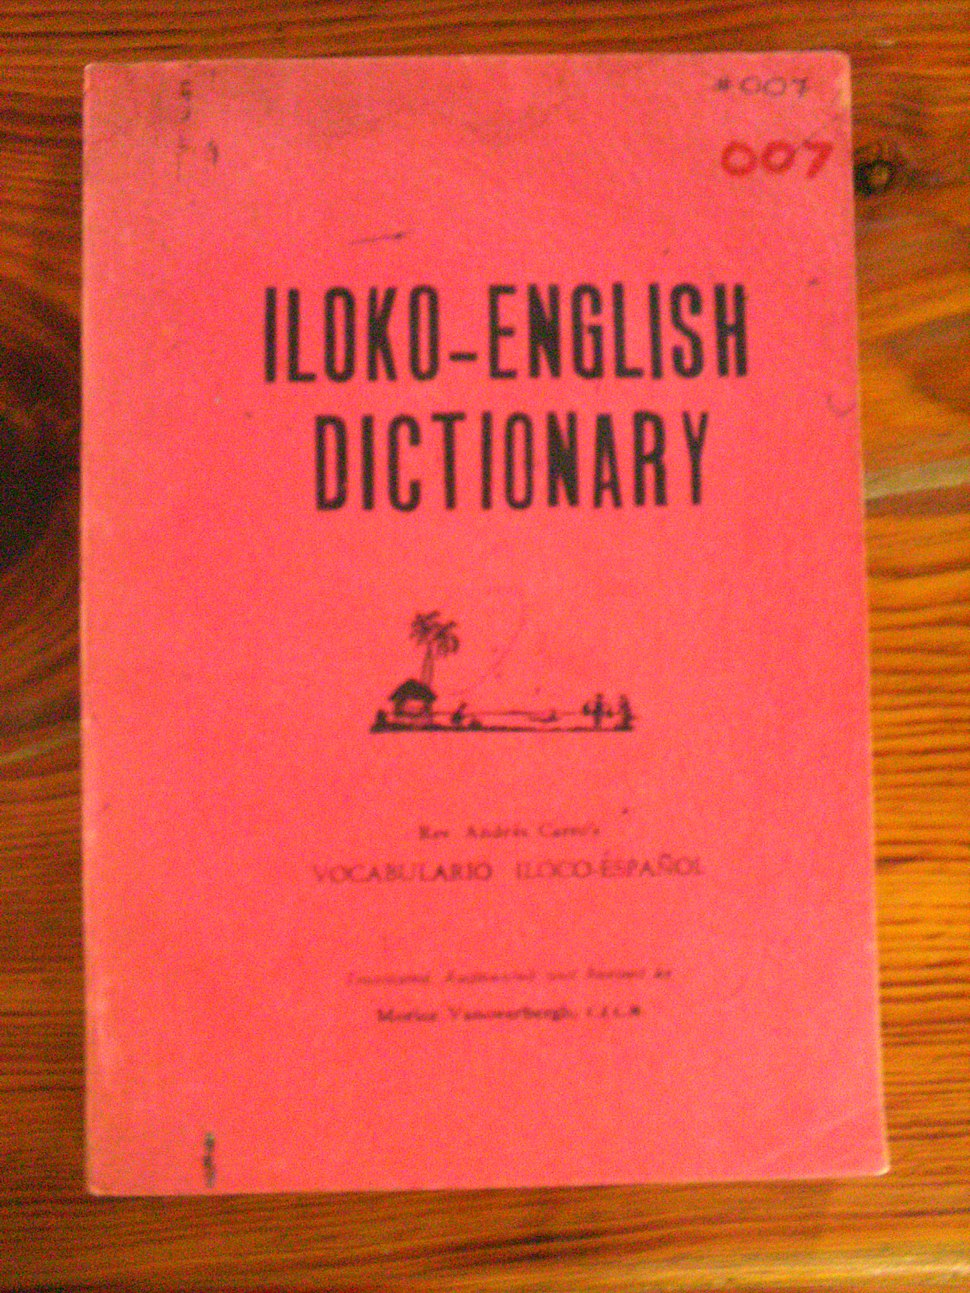 Ilocano Dictionary Published by the CICM in 1930